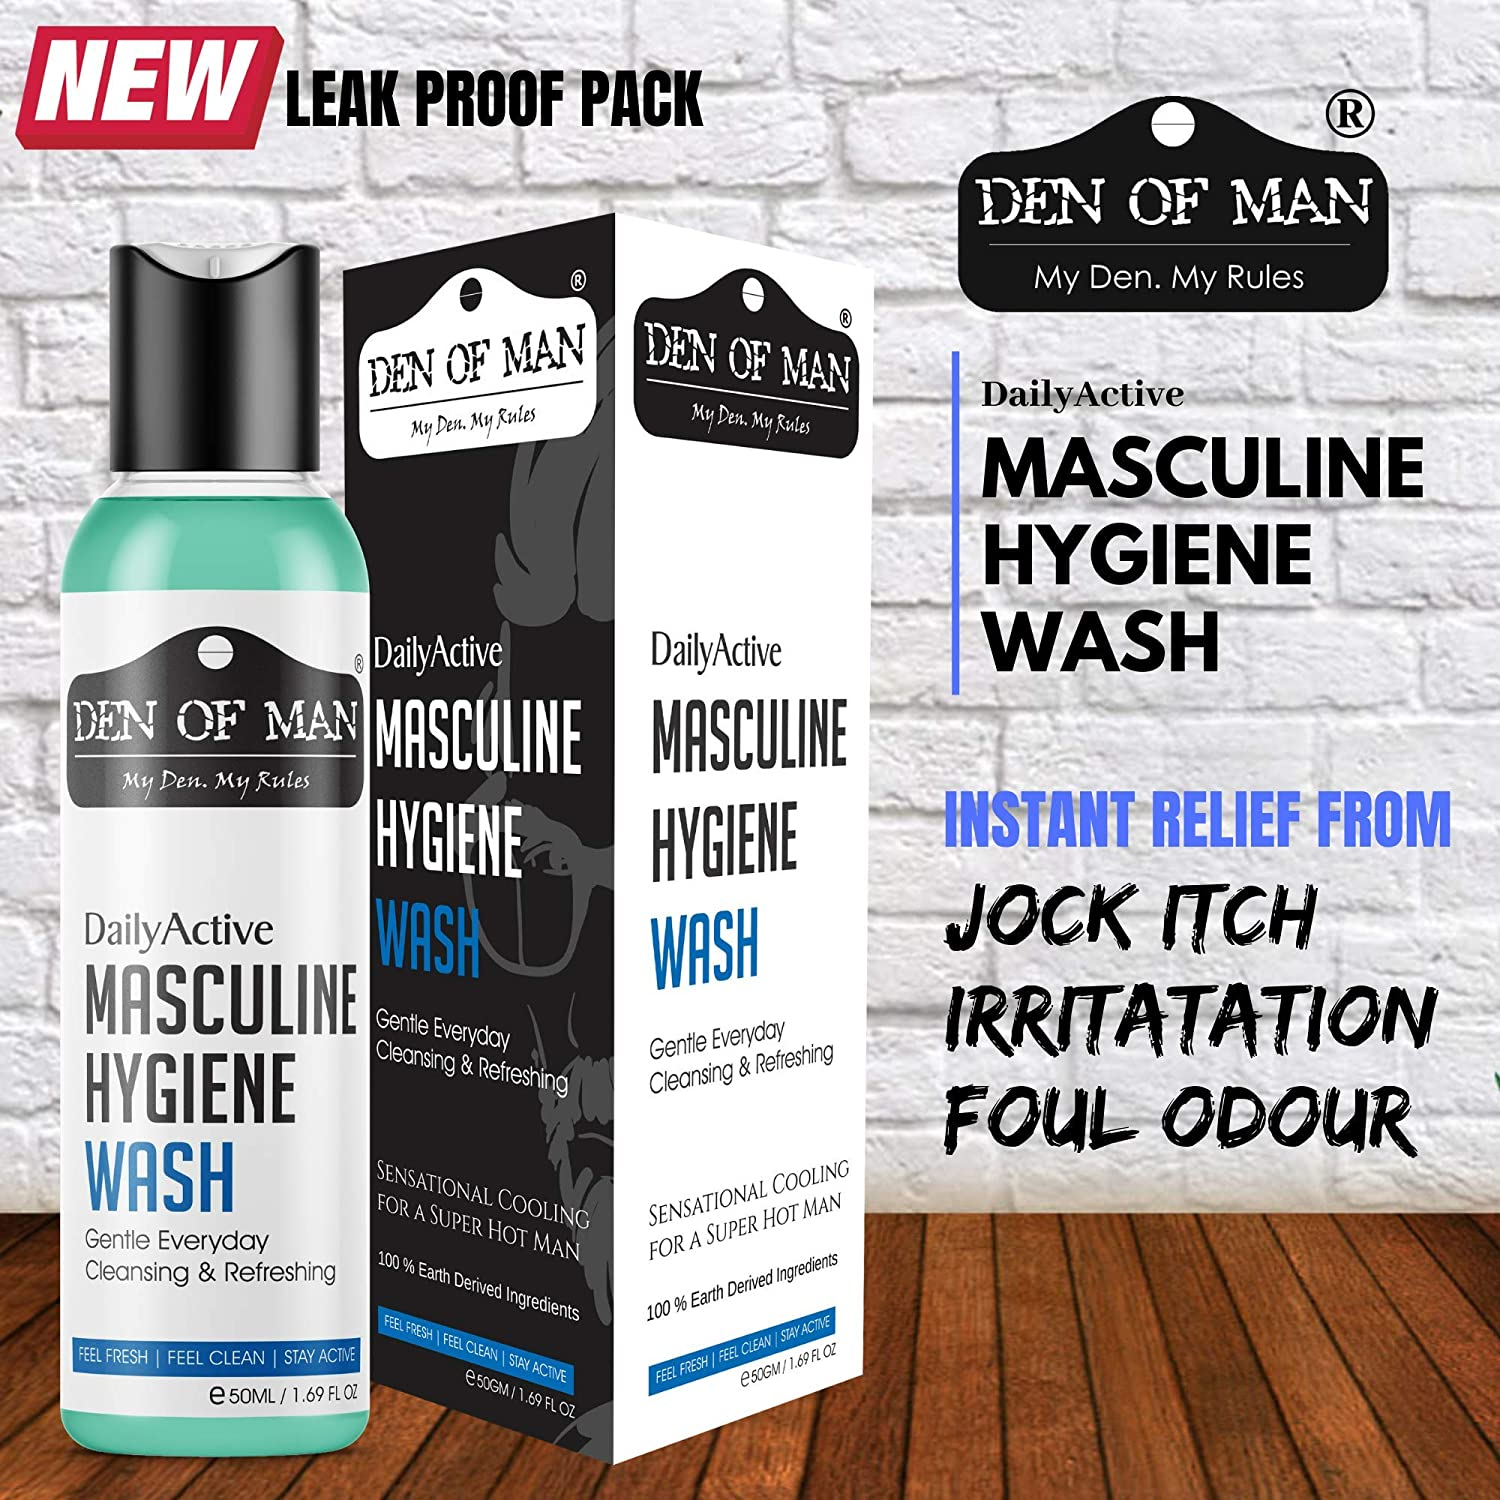 Den of Man DailyActive Masculine Hygiene Wash, 50g